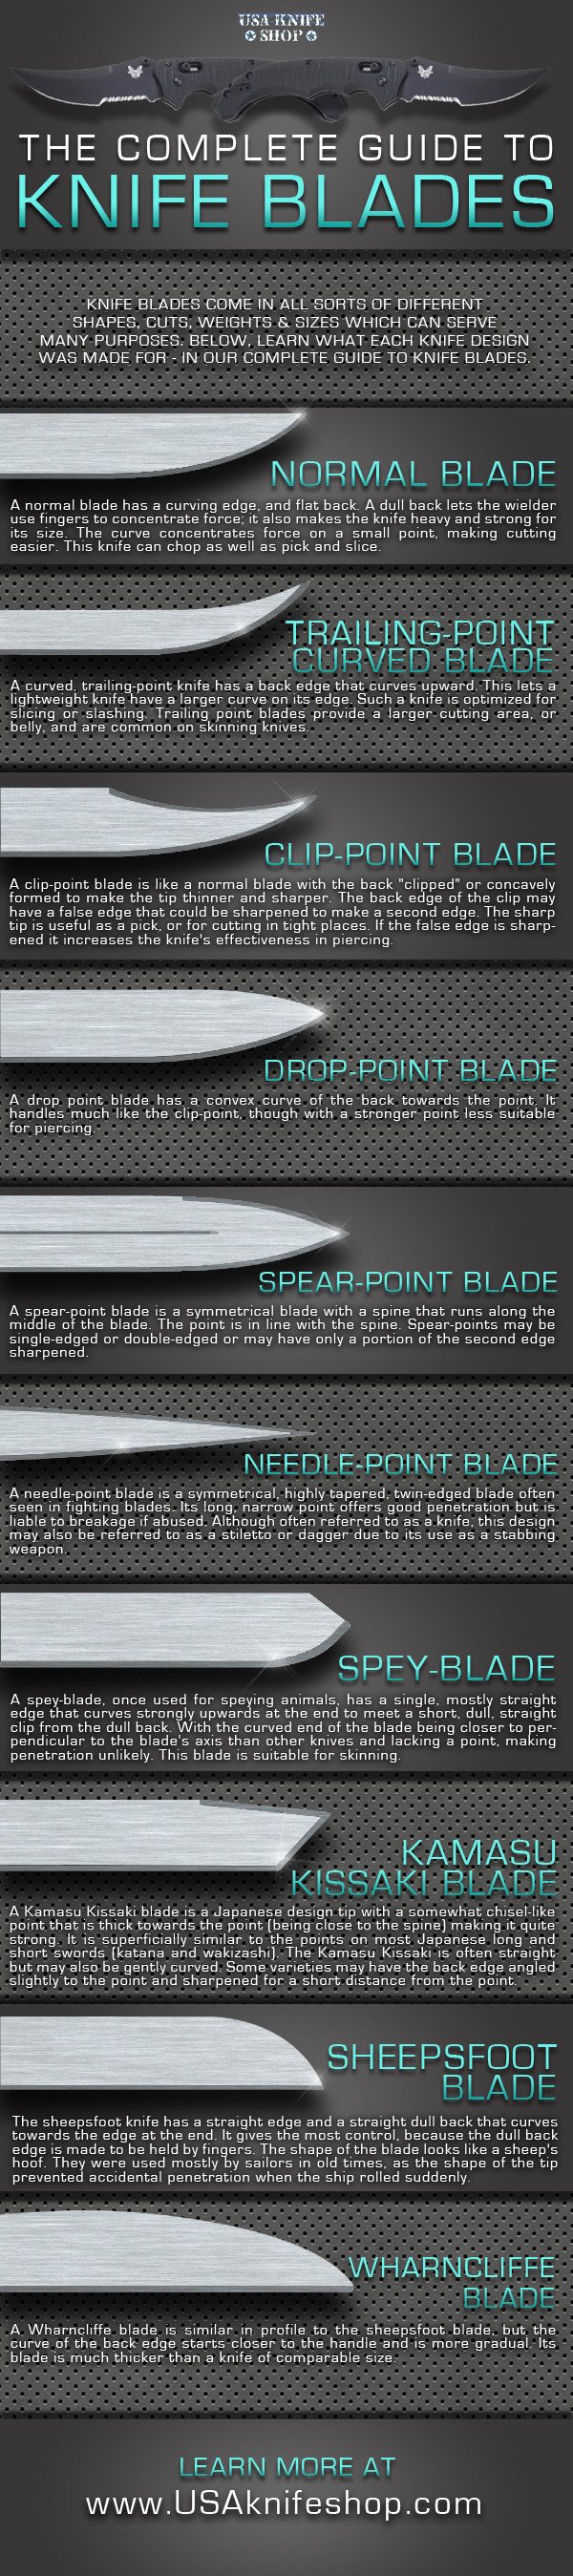 Knife Blade Designs Knife Blades Visual ly